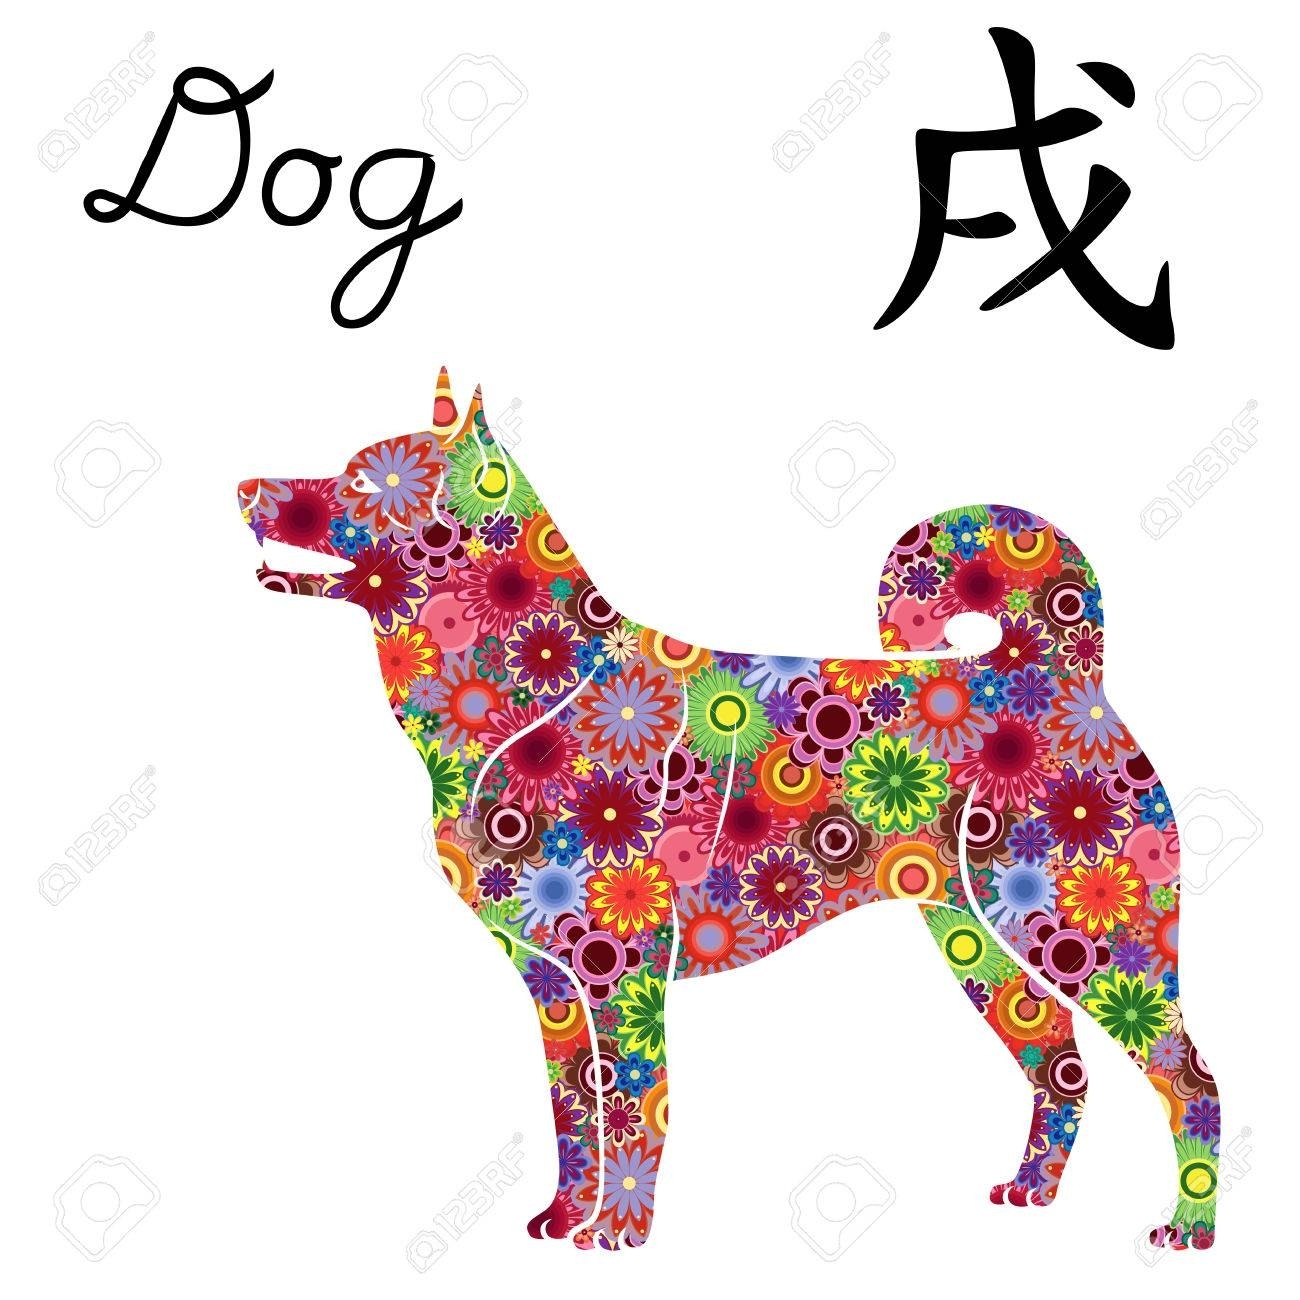 Chinese Zodiac Sign Dog, Symbol Of New Year On The Eastern Calendar,..